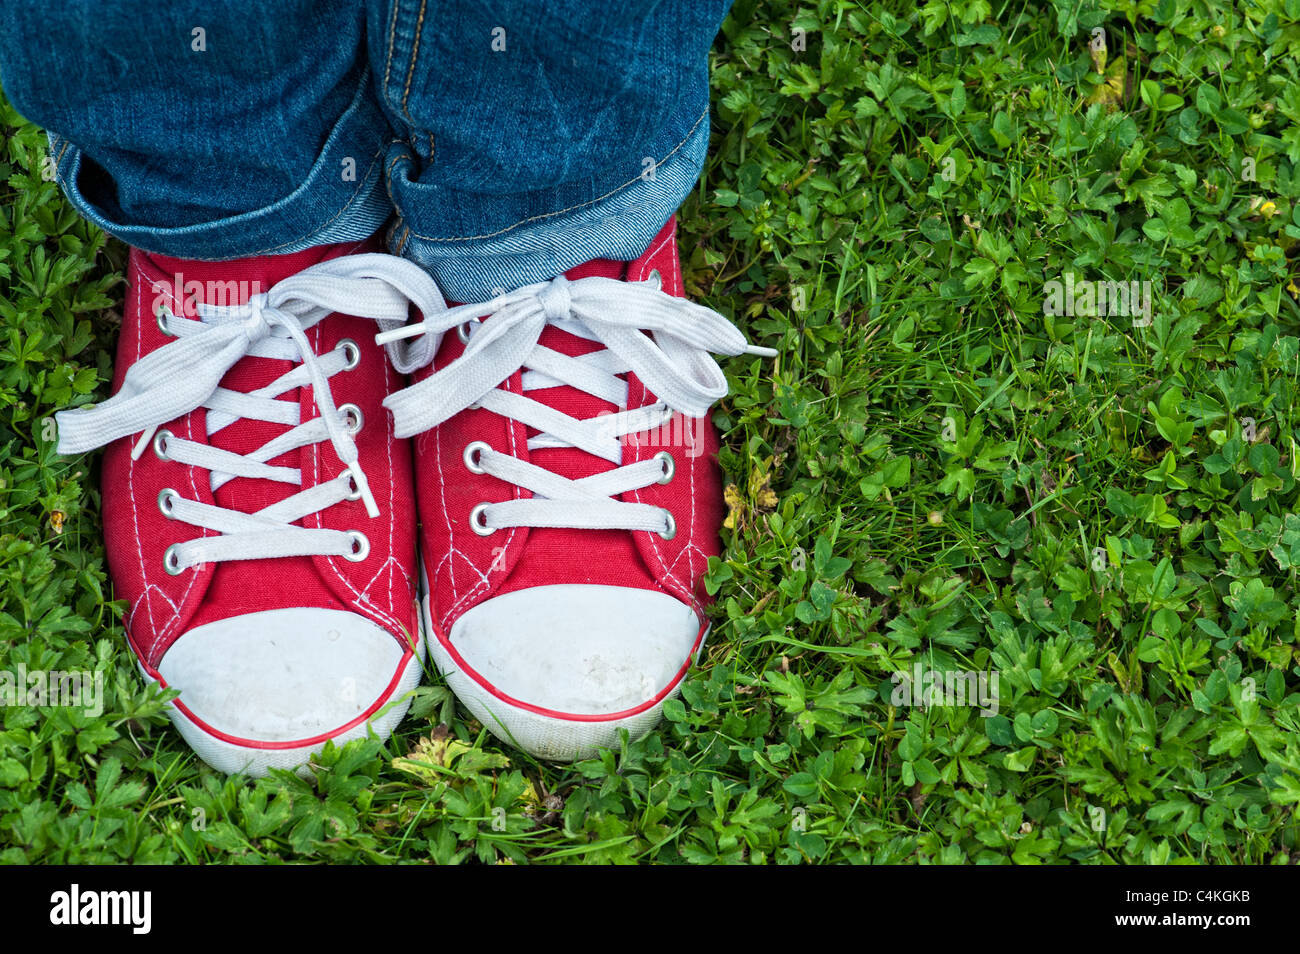 Red sneakers - Stock Image